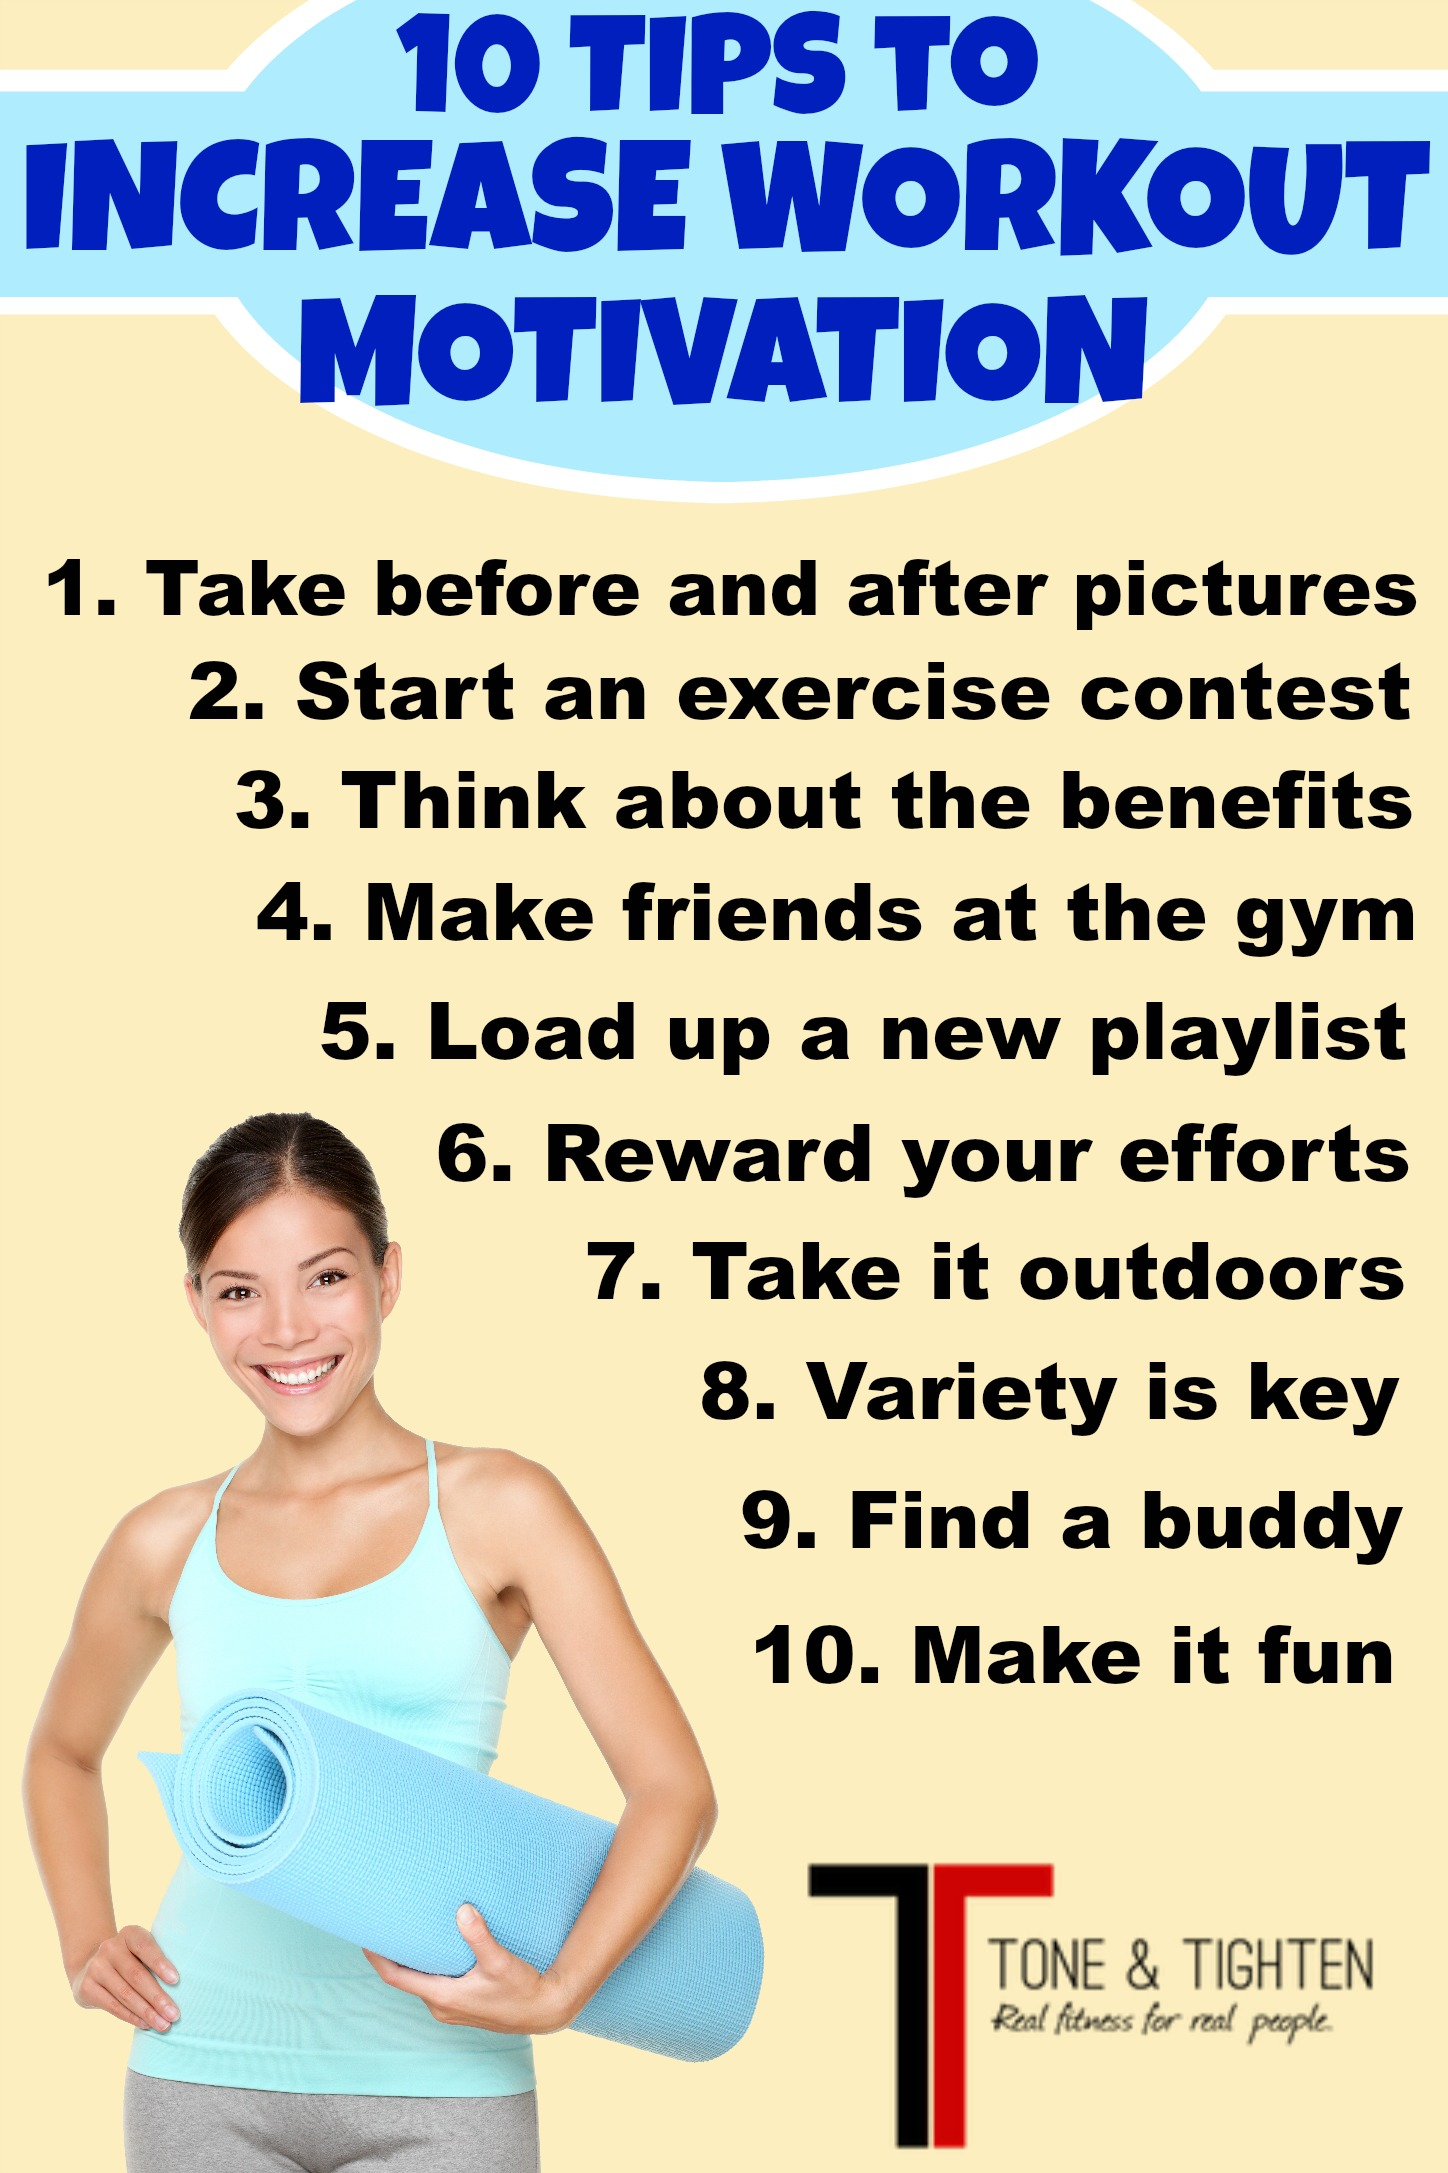 how to get motivated to workout 10 tips tone and tighten